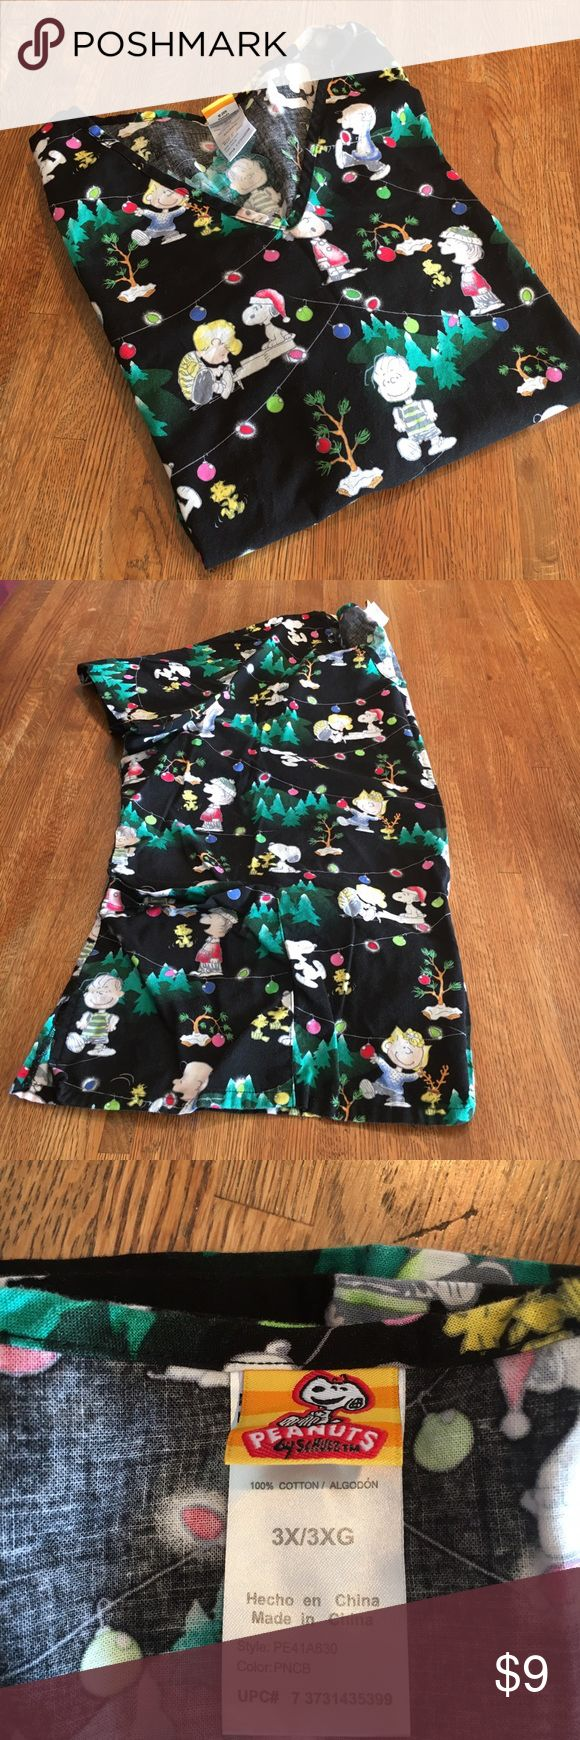 "Medical Scrub Top, size 3X Medical scrub top, size 3X. Peanuts brand with a Christmas theme. Bust laid flat is d flat is 26.5"" and shoulder to hem is 28.5"". Peanuts Tops Tunics"